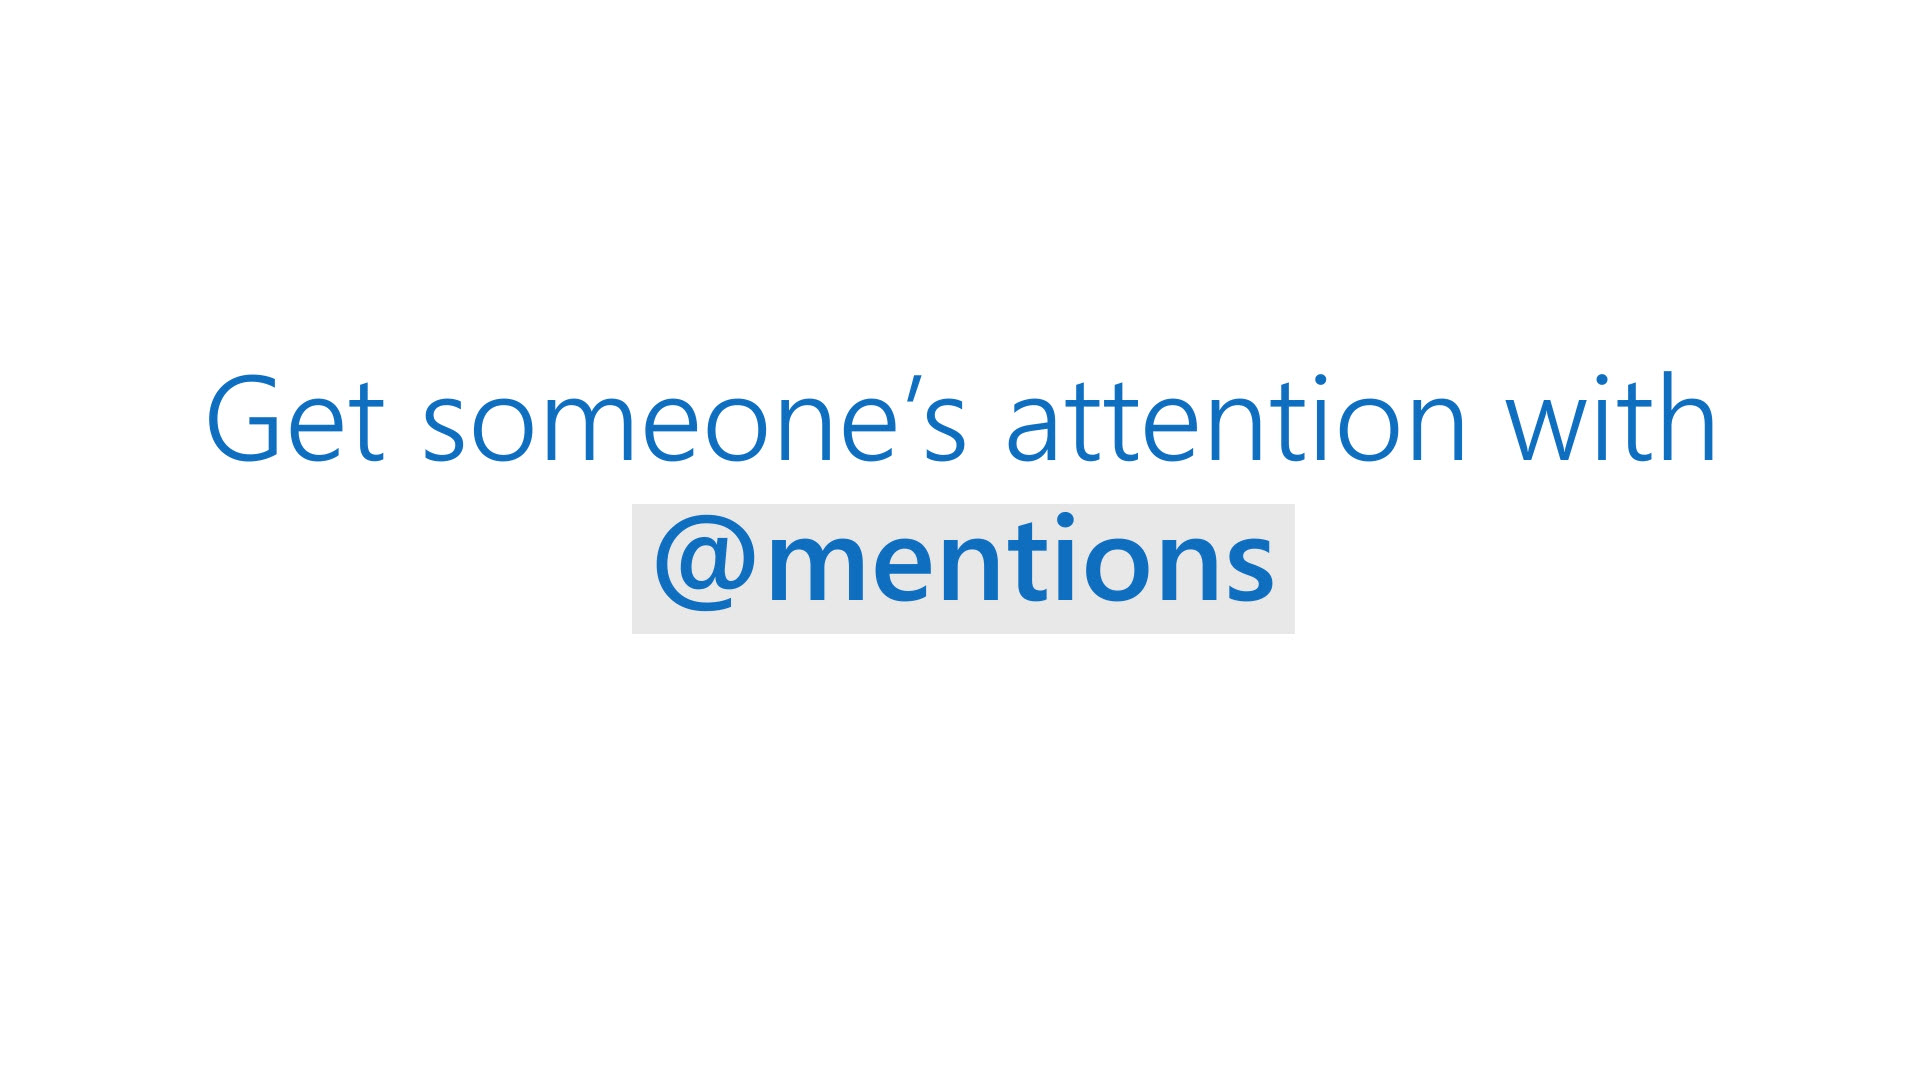 Use Mentions To Get Someones Attention Office Support